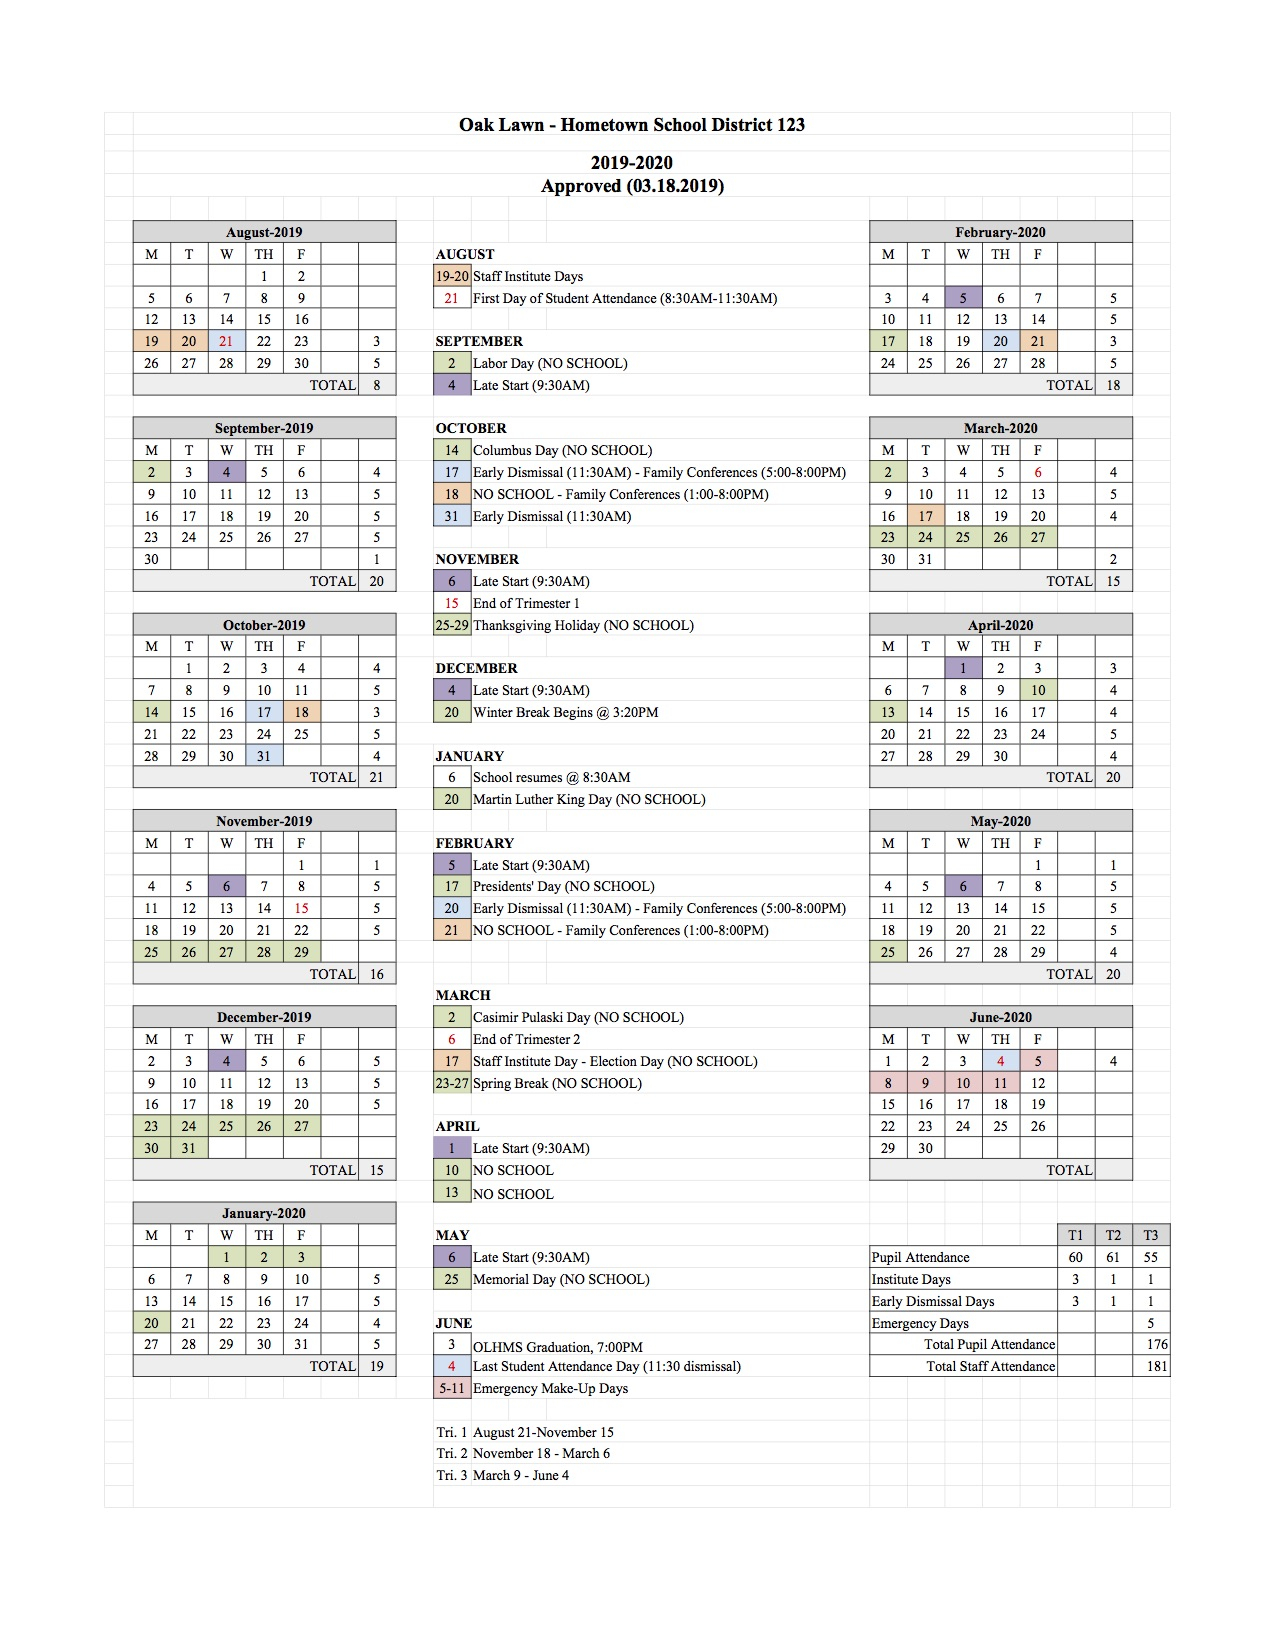 Academic Calendar - Oak Lawn - Hometown School District 123 intended for St Charles Illinois School Calendar